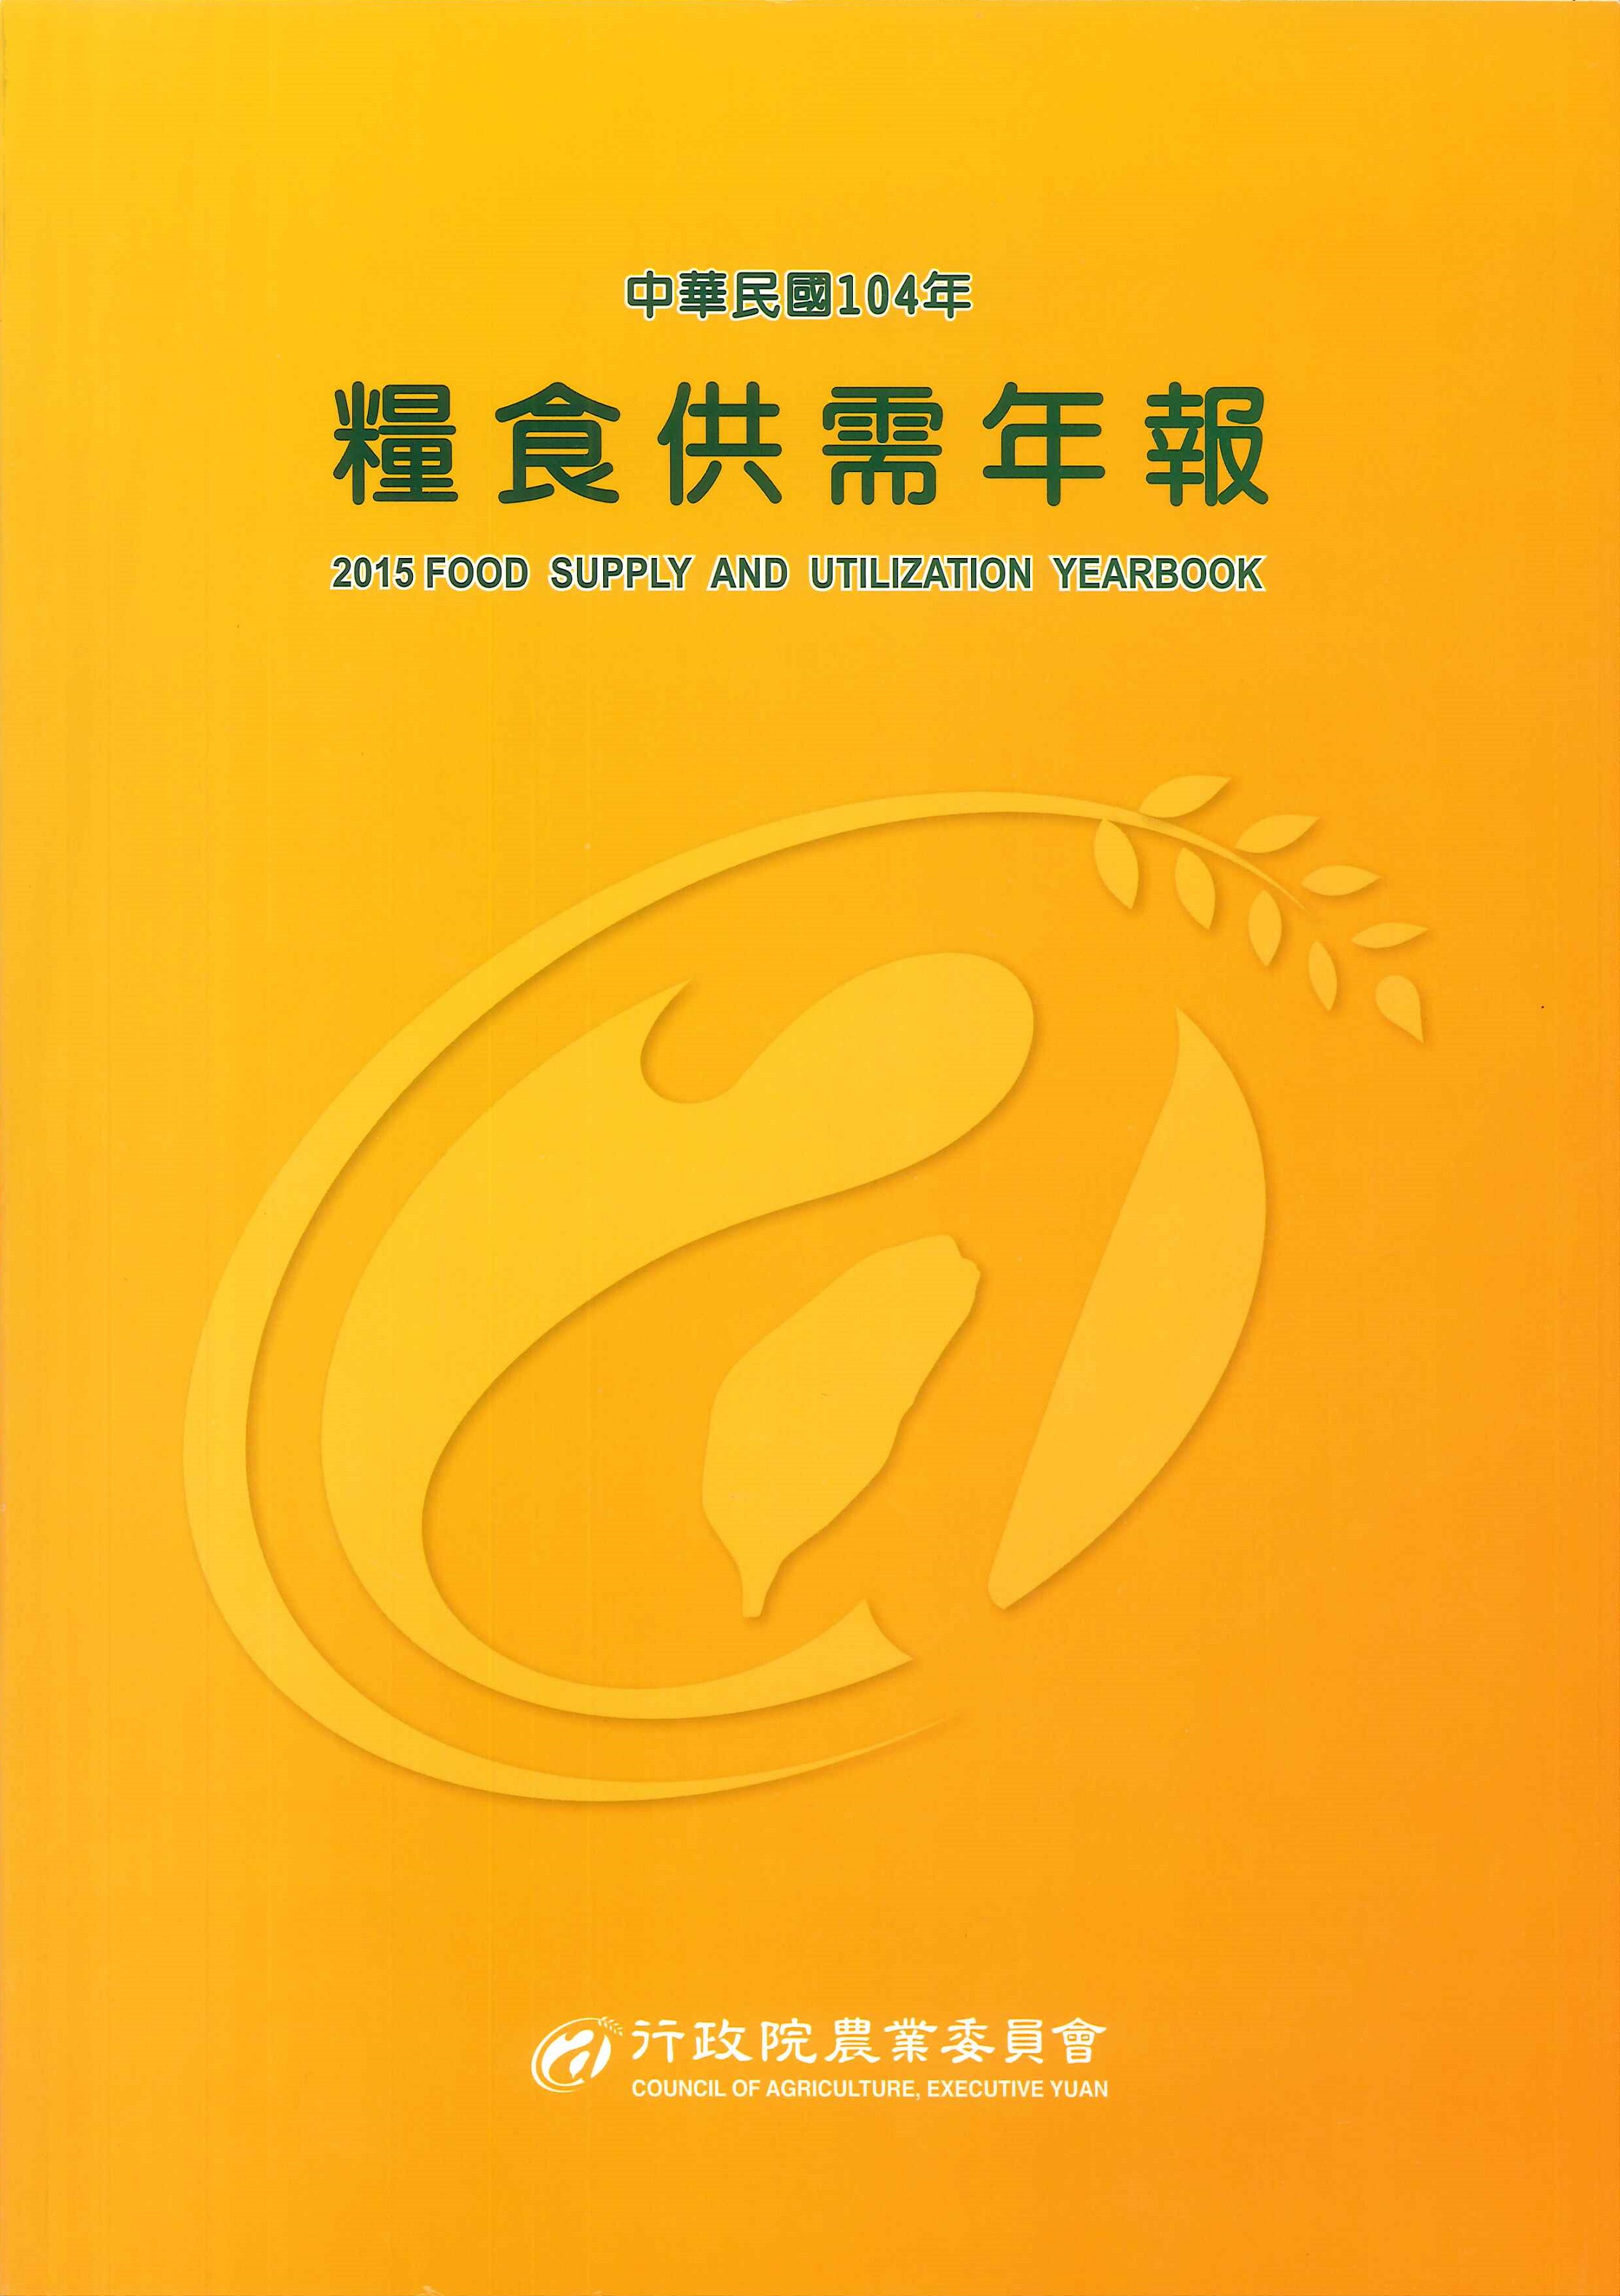 糧食供需年報=Food supply and utilization yearbook